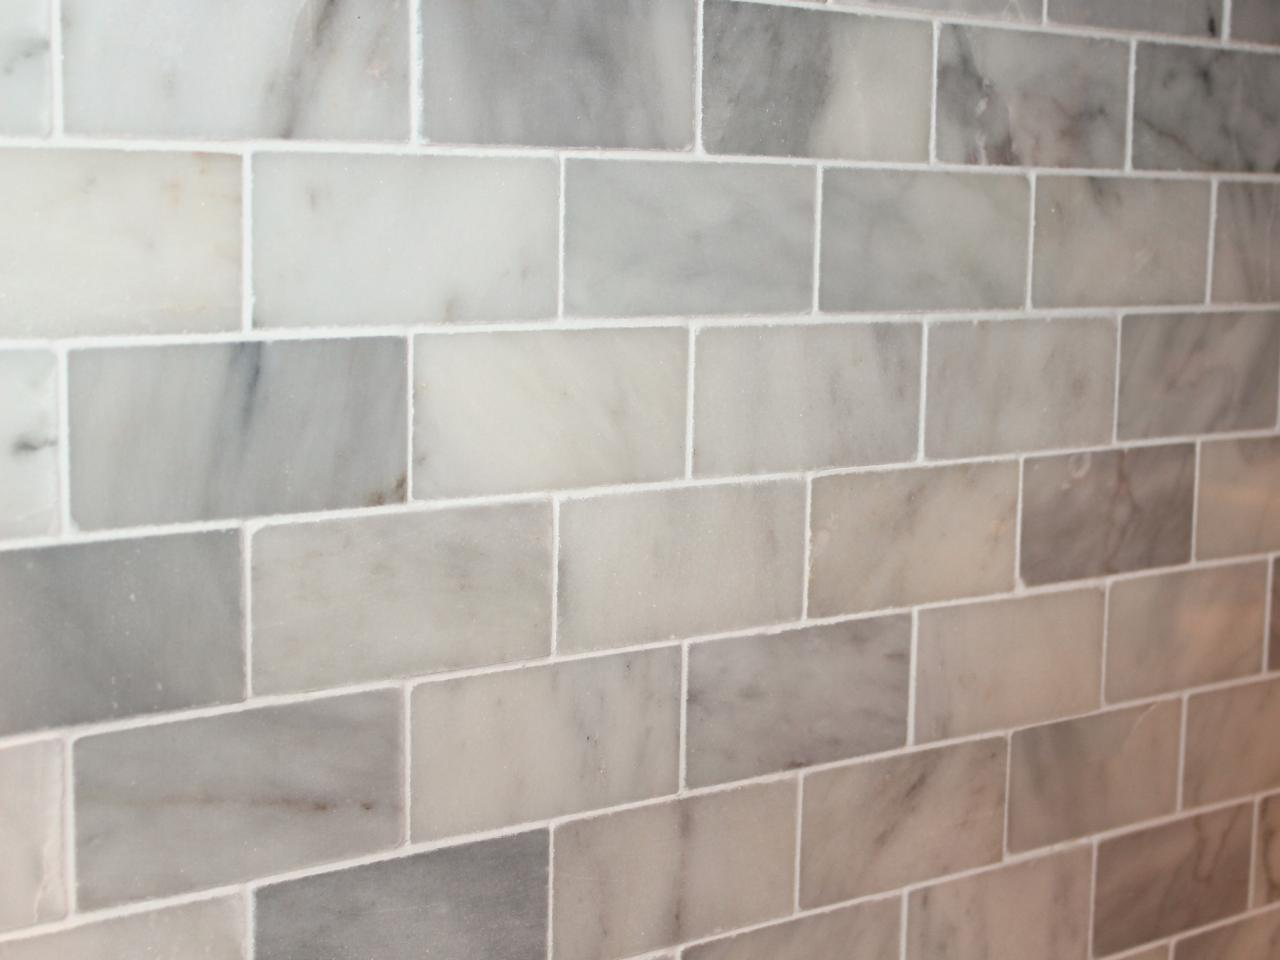 fill in gaps with grout to complete backsplash